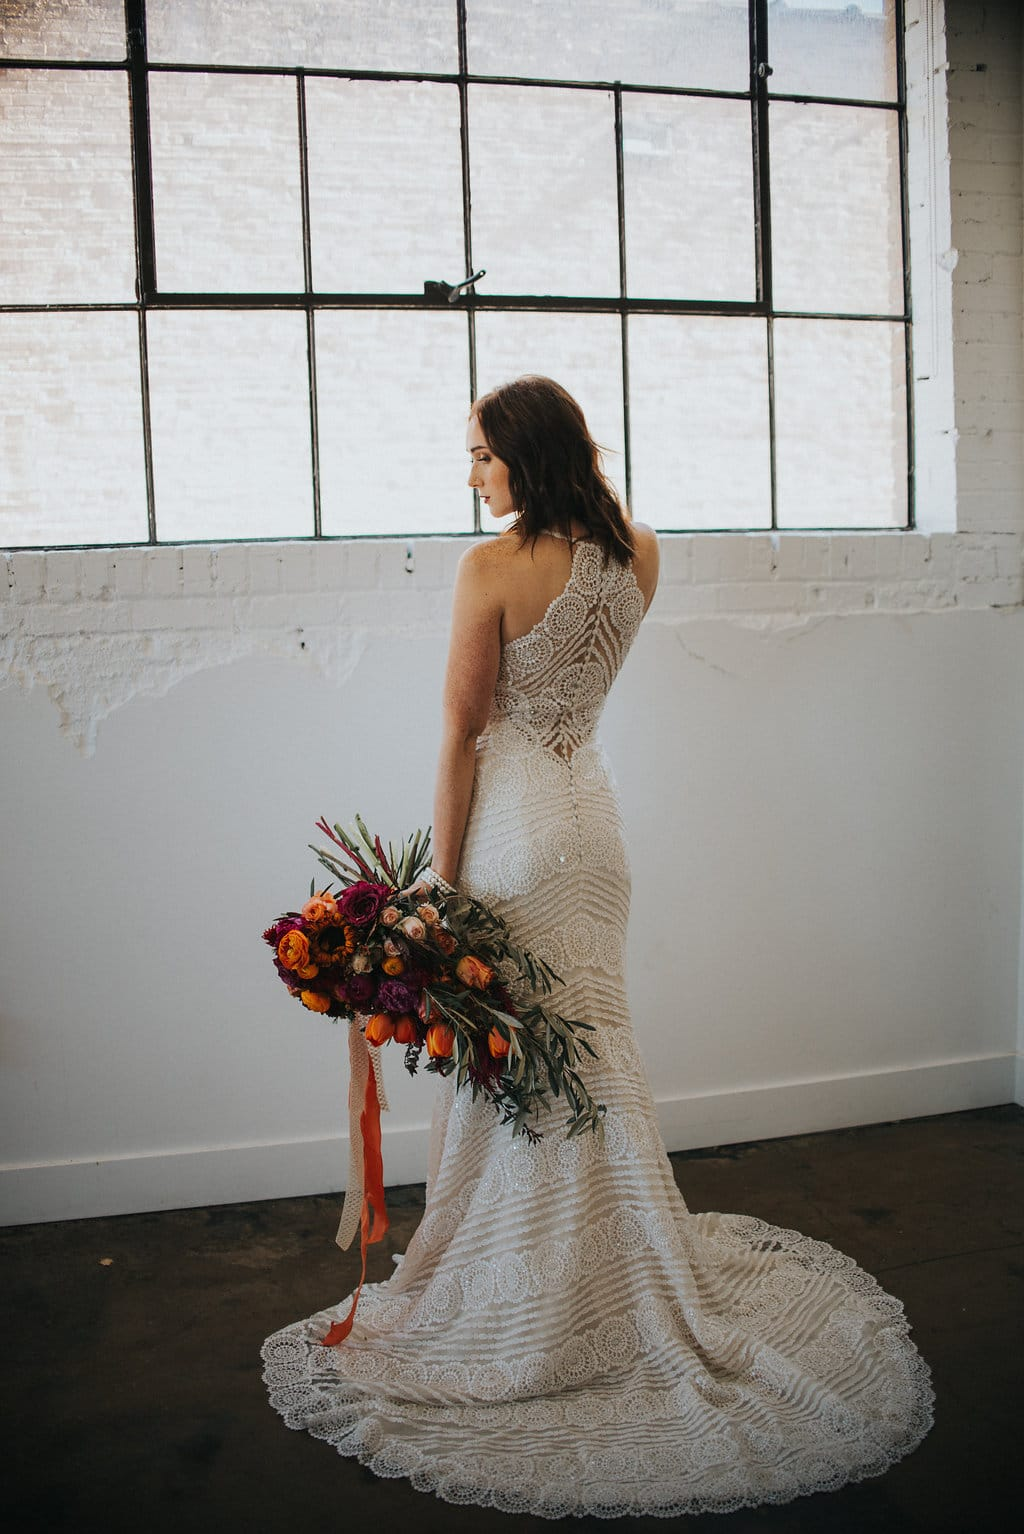 Lush Floral Palette with Unique Lace Wedding Dress - Styled Shoot featuring Bexley by Sottero and Midgley